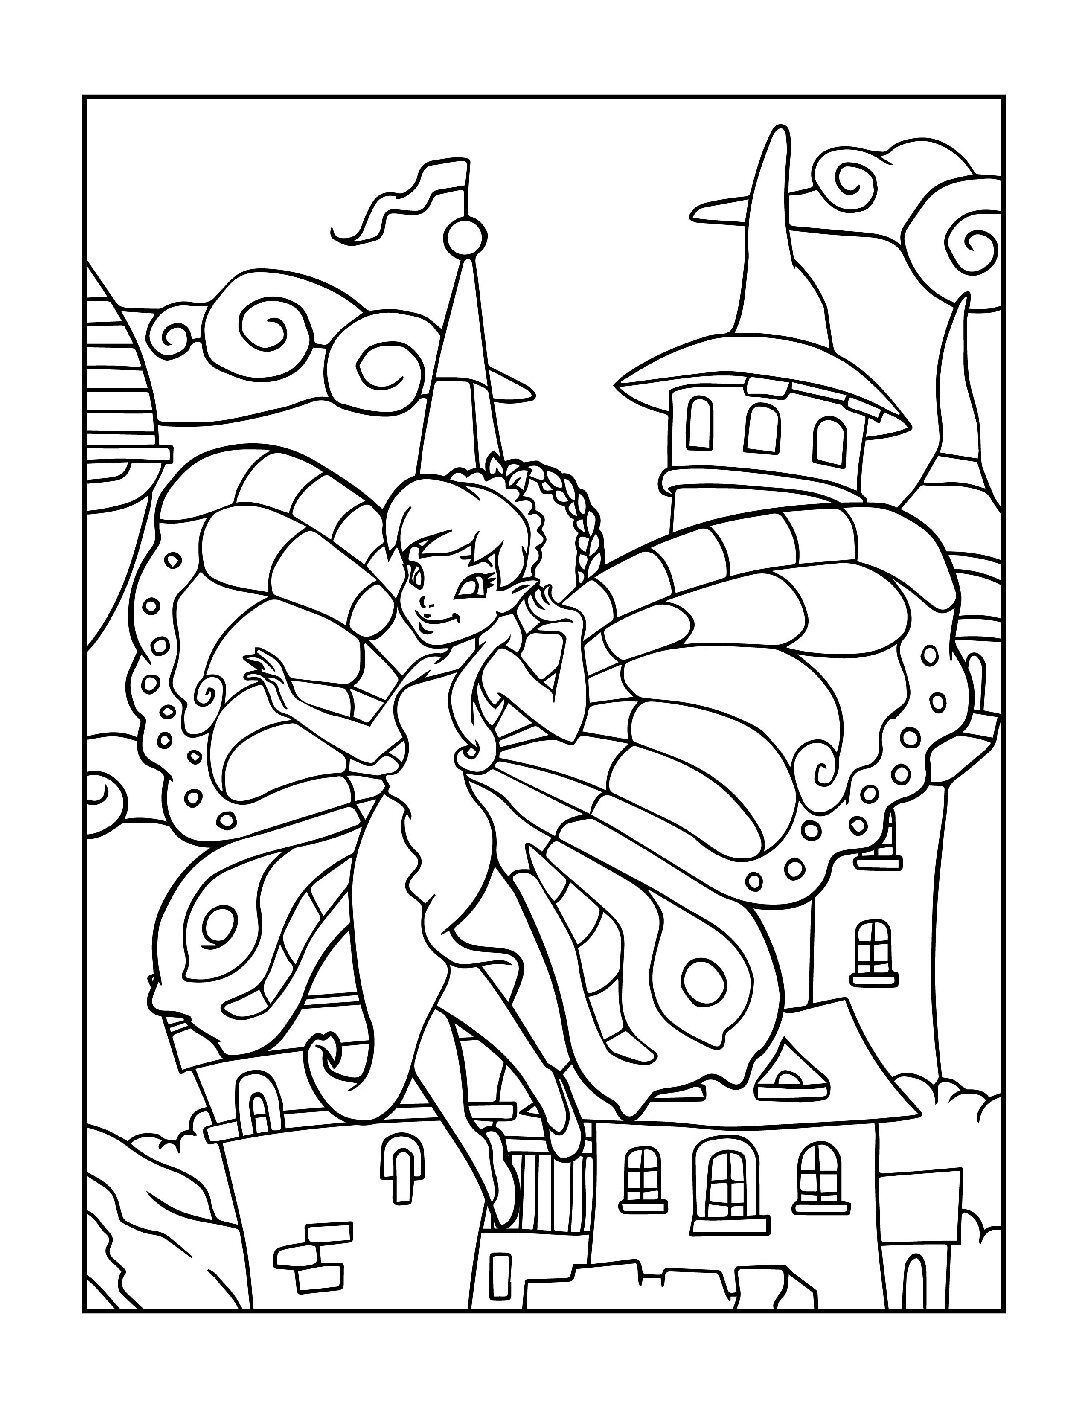 Coloring-Pages-Fairies-4-01-pdf Free Printable Fairy Colouring Pages